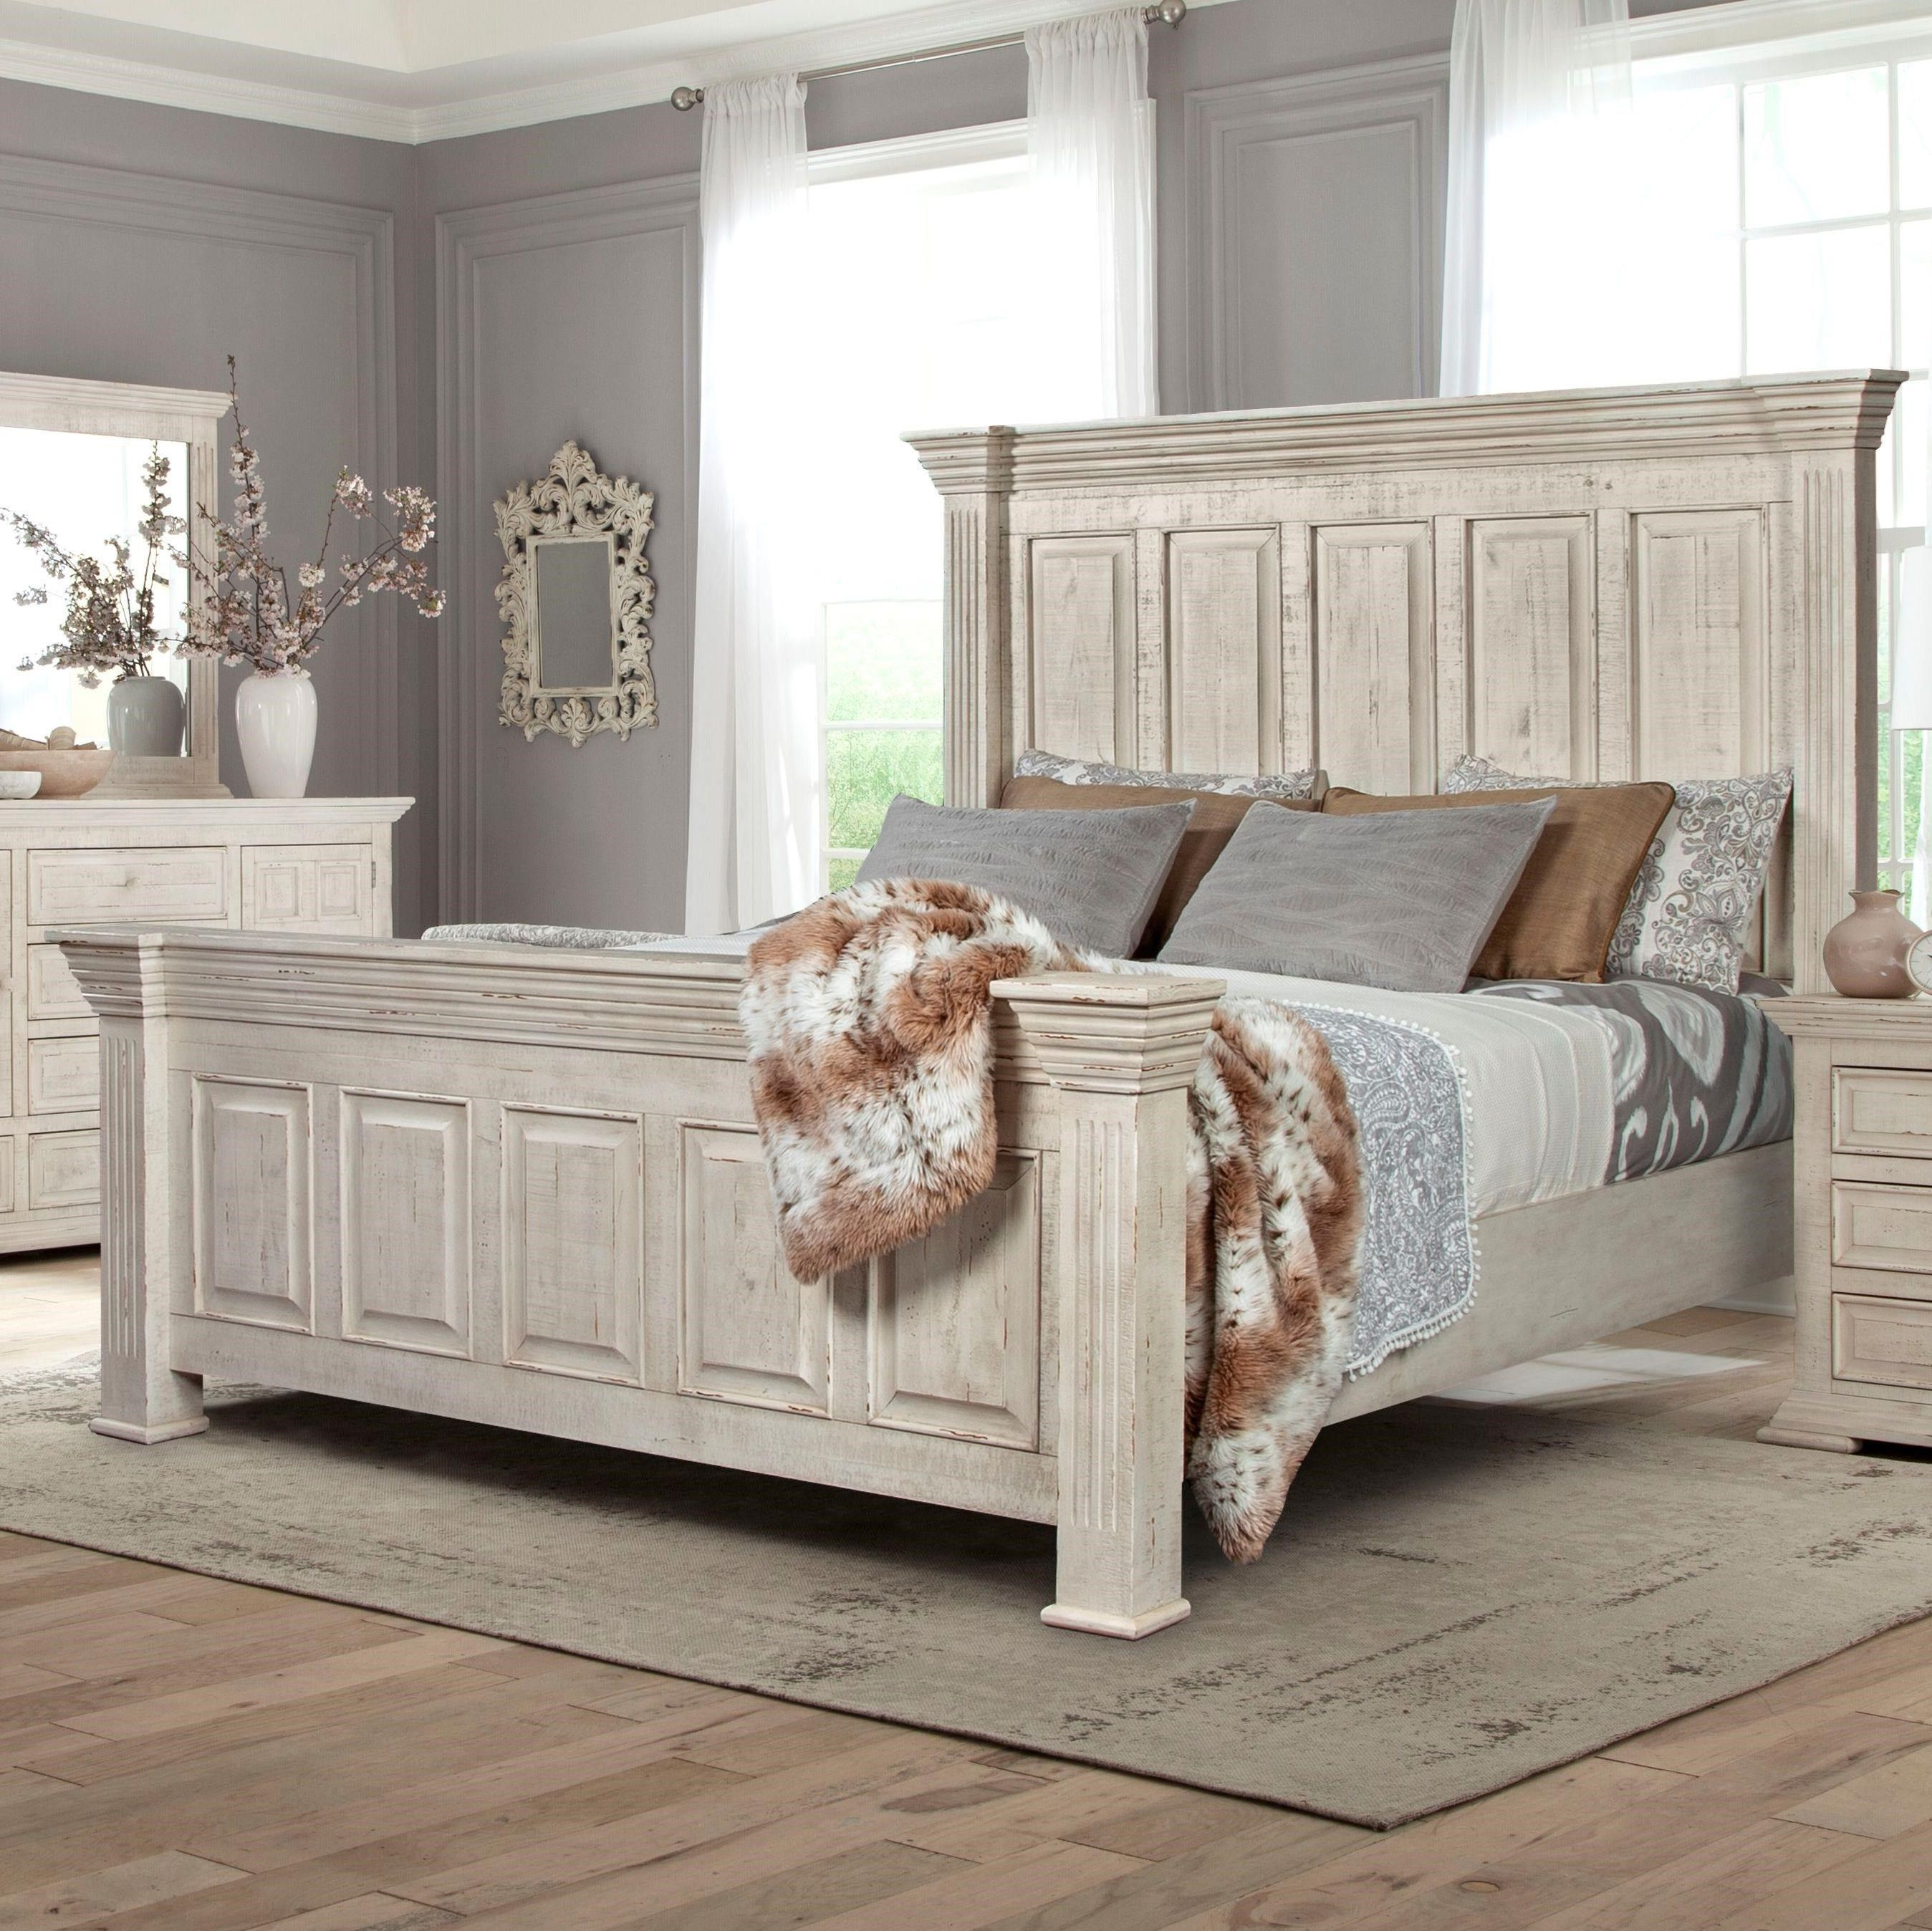 Johnson Queen Mansion Bed By Lifestyle Royal Furniture